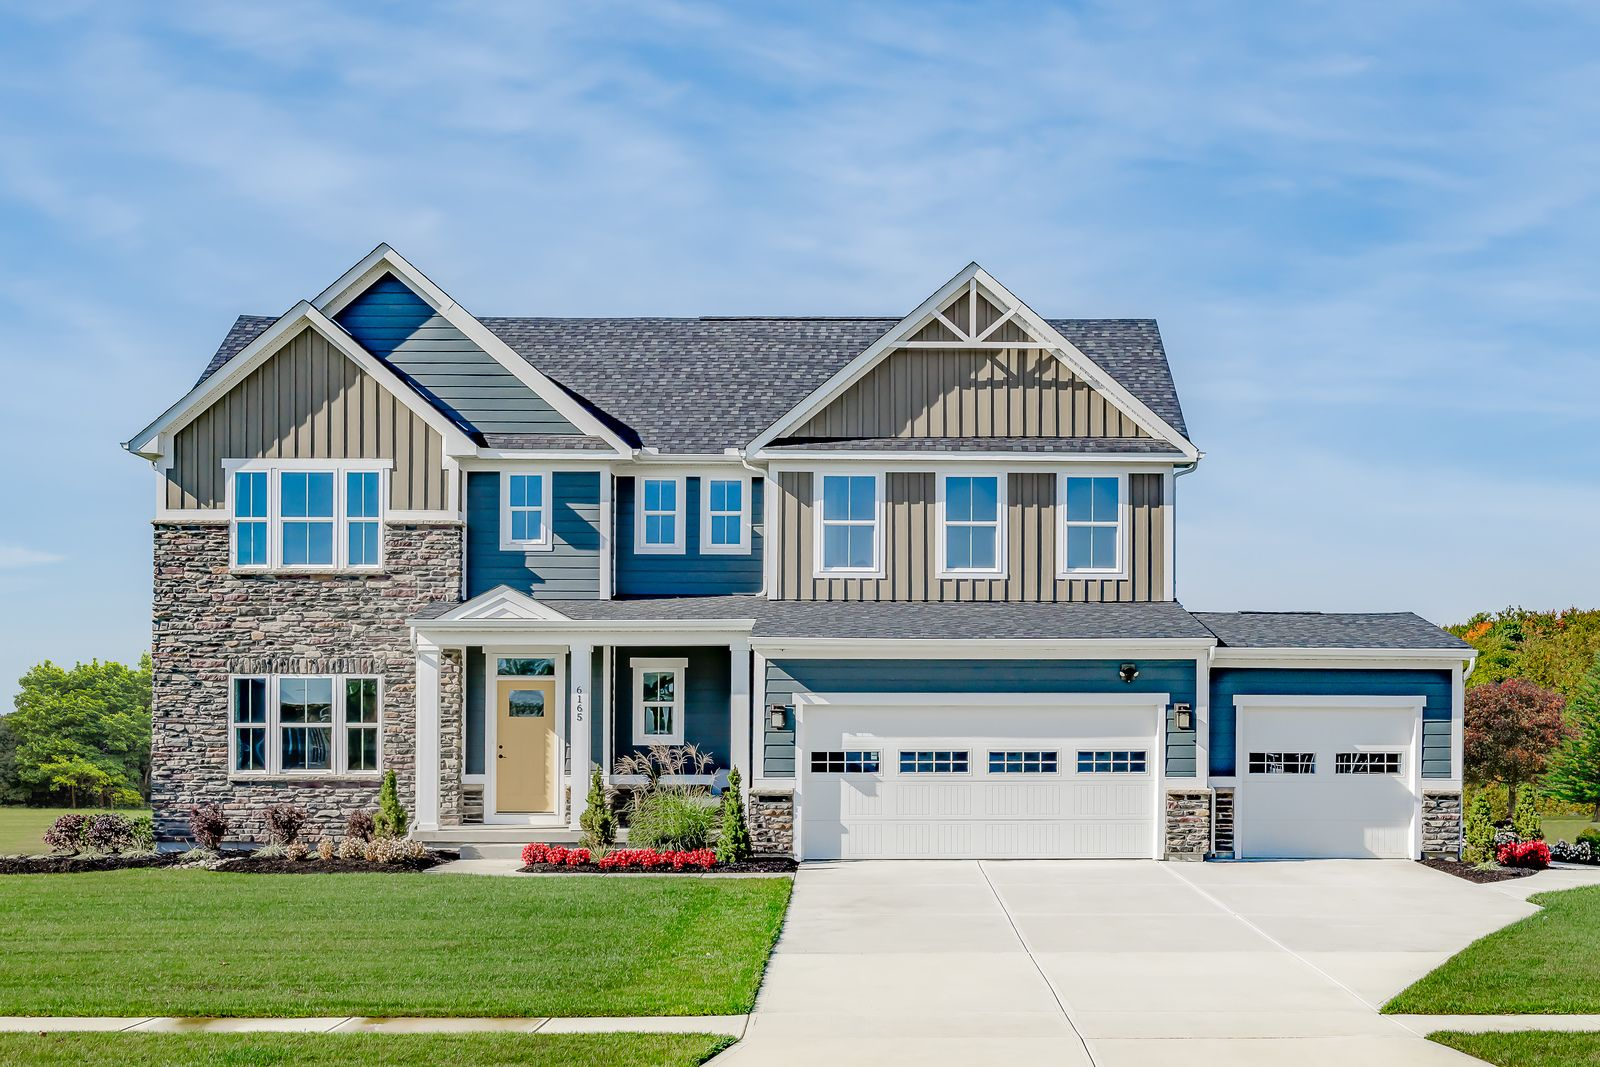 Imagine your home here:16 families have decided to buy in Hampton Pointe in 2021 alone!Schedule your visit now and find out more about homes such as the Roanoke above!